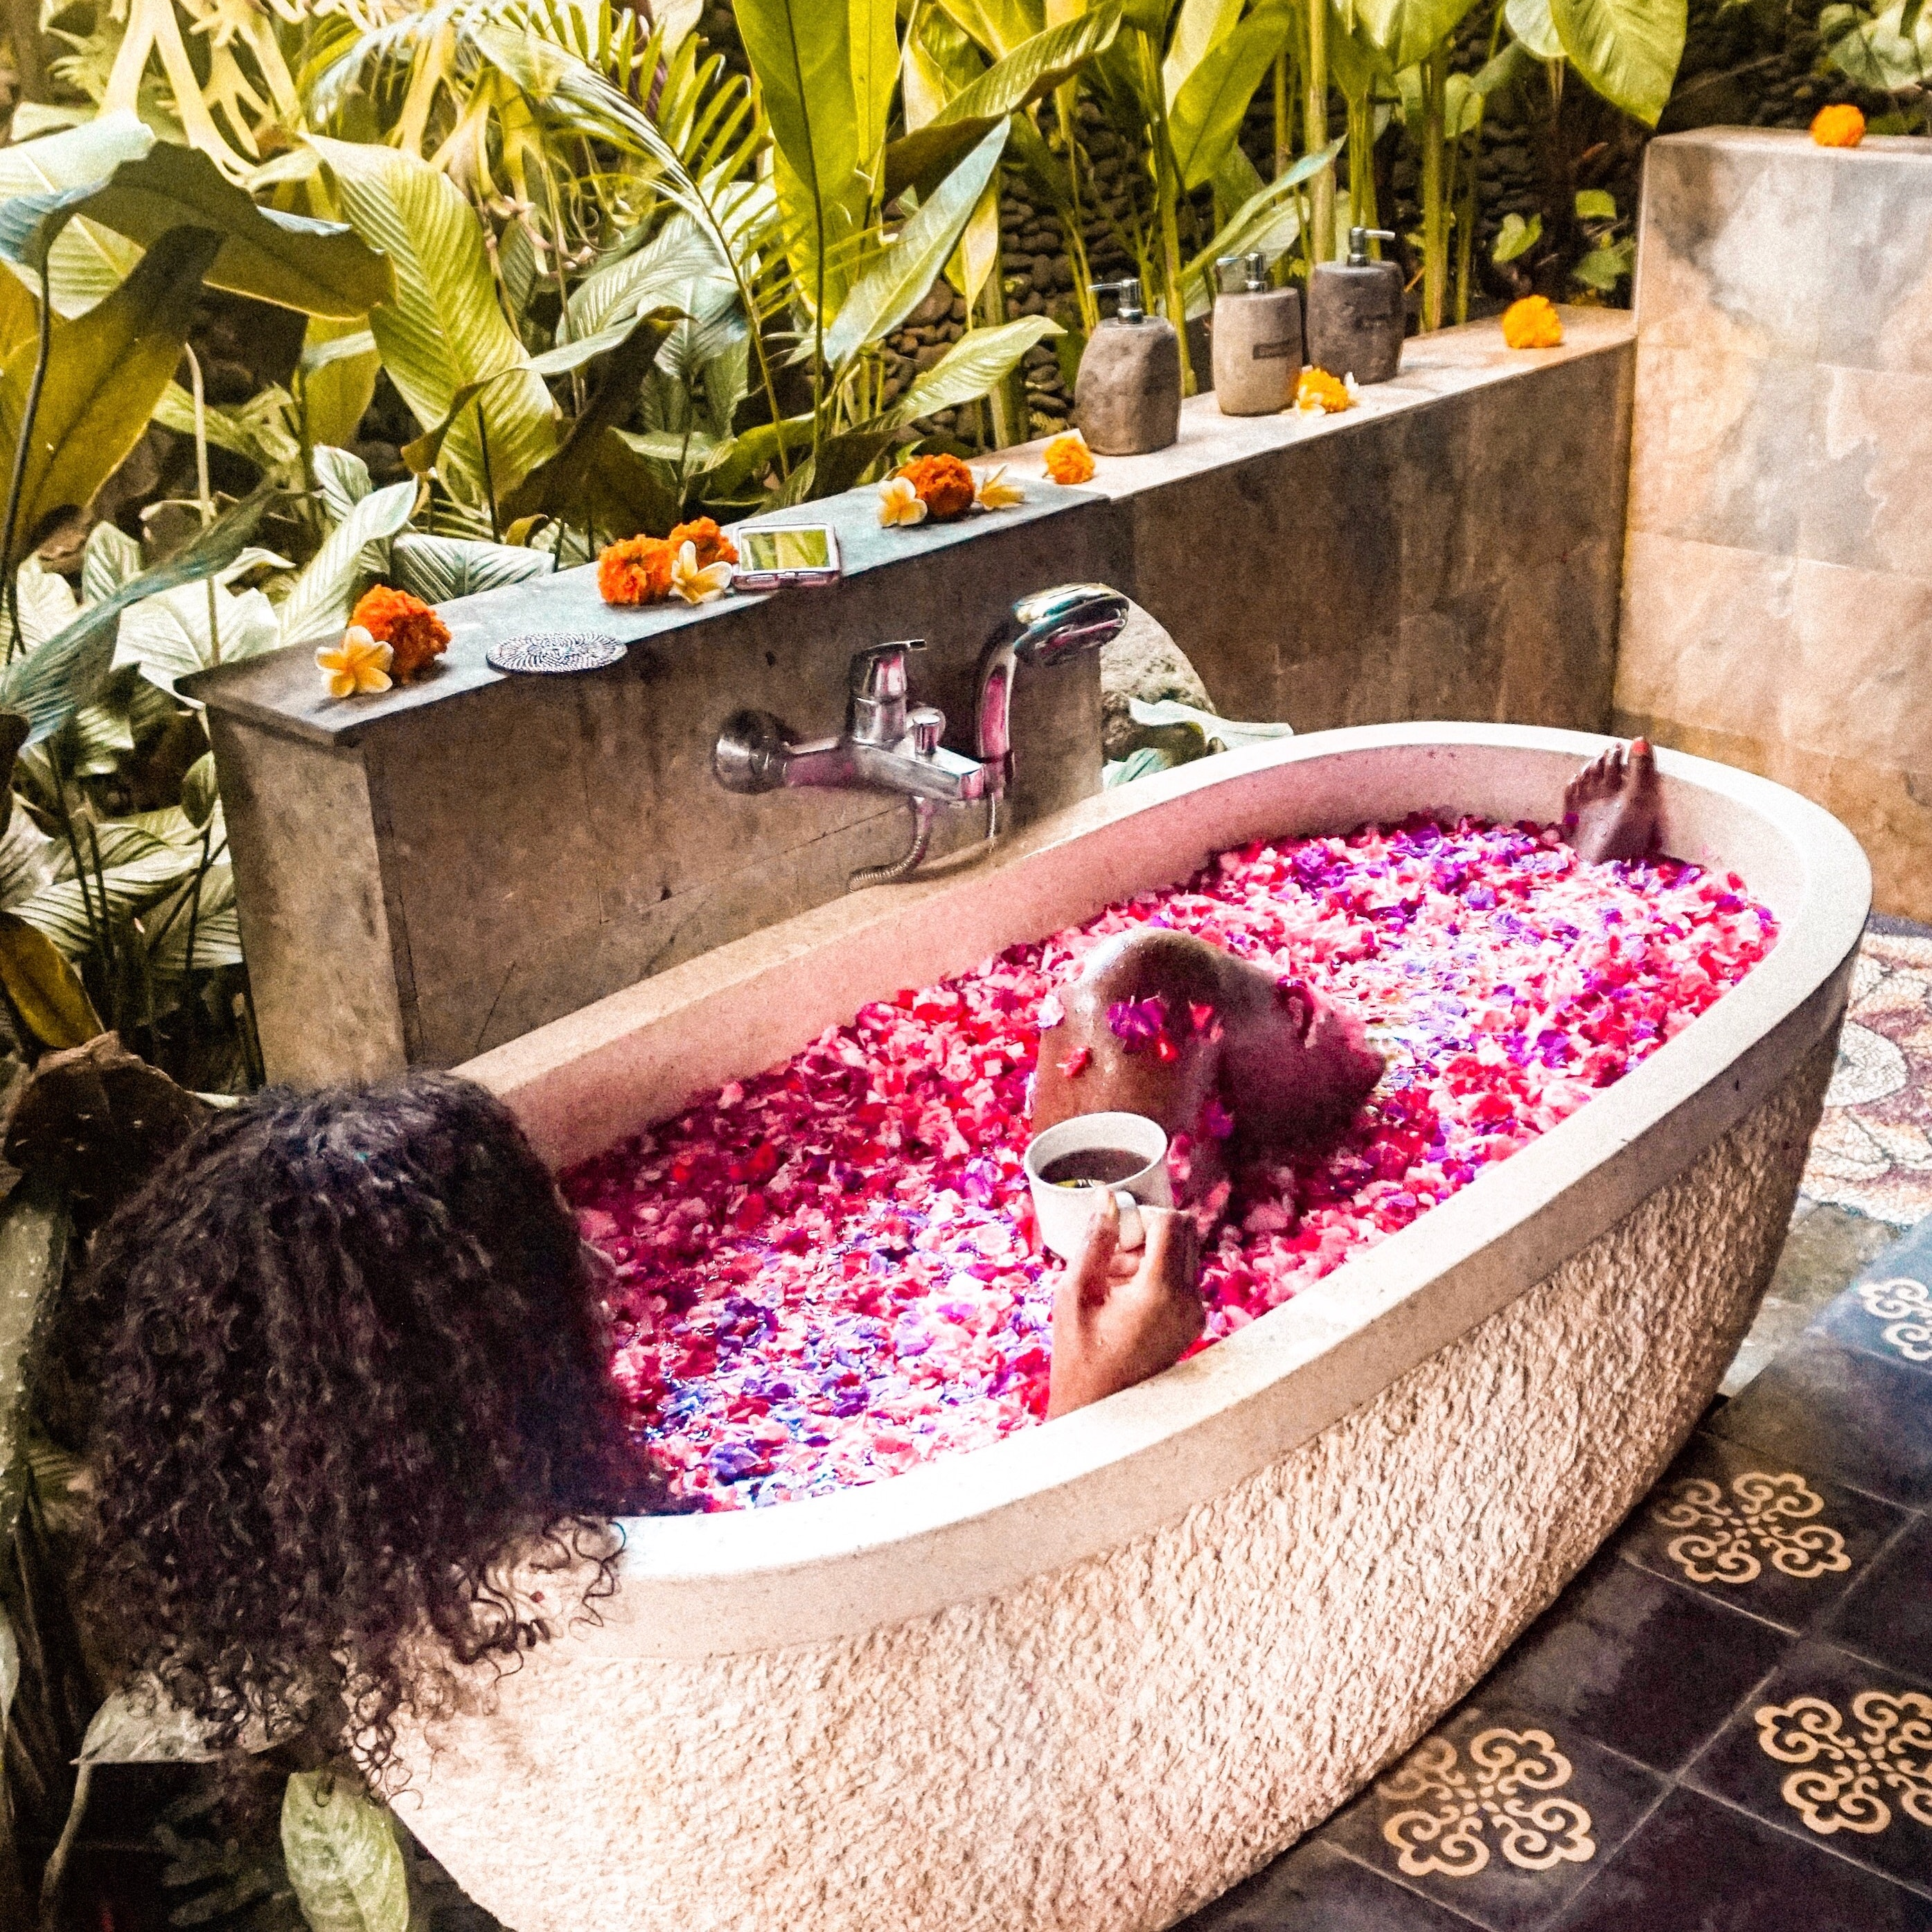 I Bathed In The Flower Bath Everyone's Obsessed With On